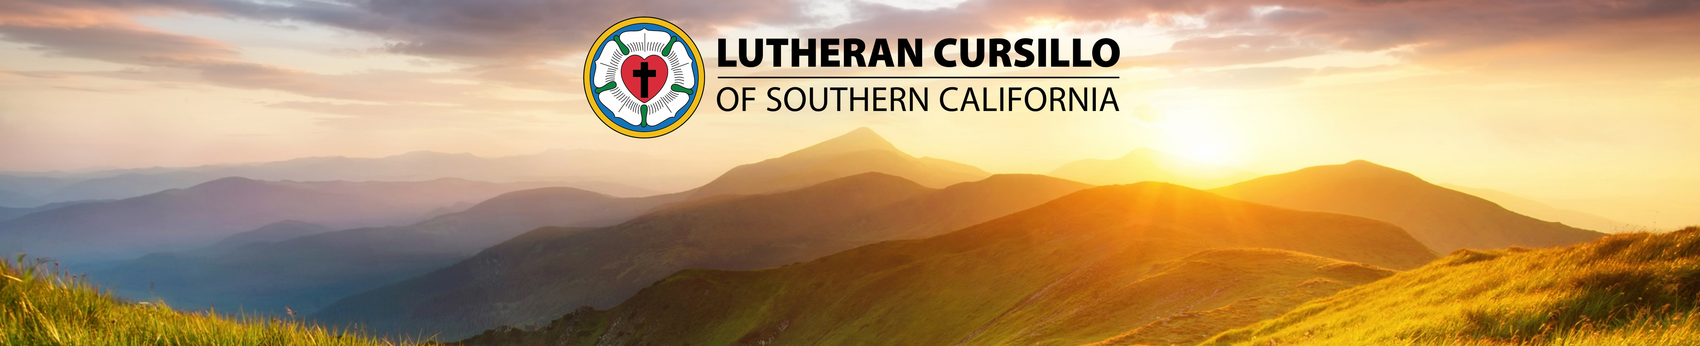 Lutheran Cursillo of Southern California